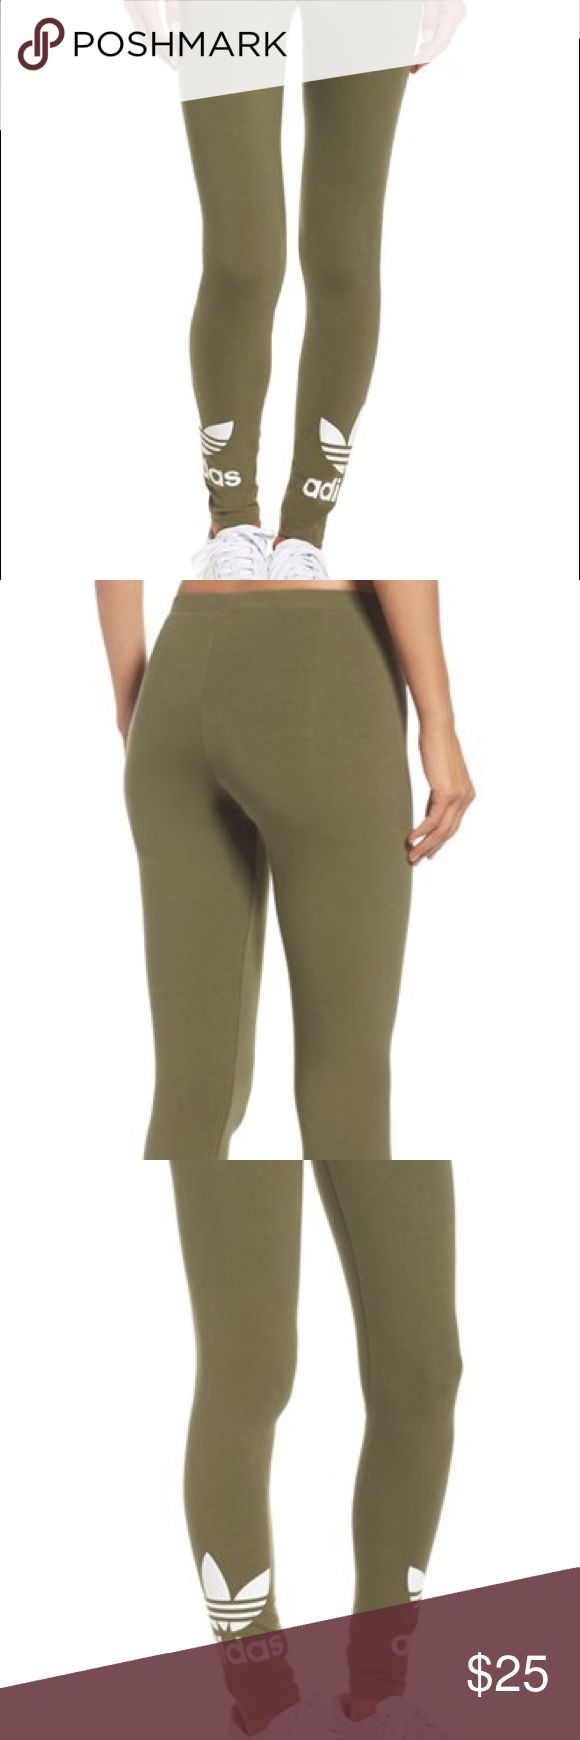 Adidas Olive Green Trefoil Leggings (Large) A pair of Adidas' olive/army green colored leggings. These leggings have the adidas logo near the ankles of both pant legs. The leggings are very flexible and comfy. They are super stylish and sold at popular stores like Urban Outfitters and Nordstrom. They have **never been worn and are new with tags** Adidas Pants Leggings